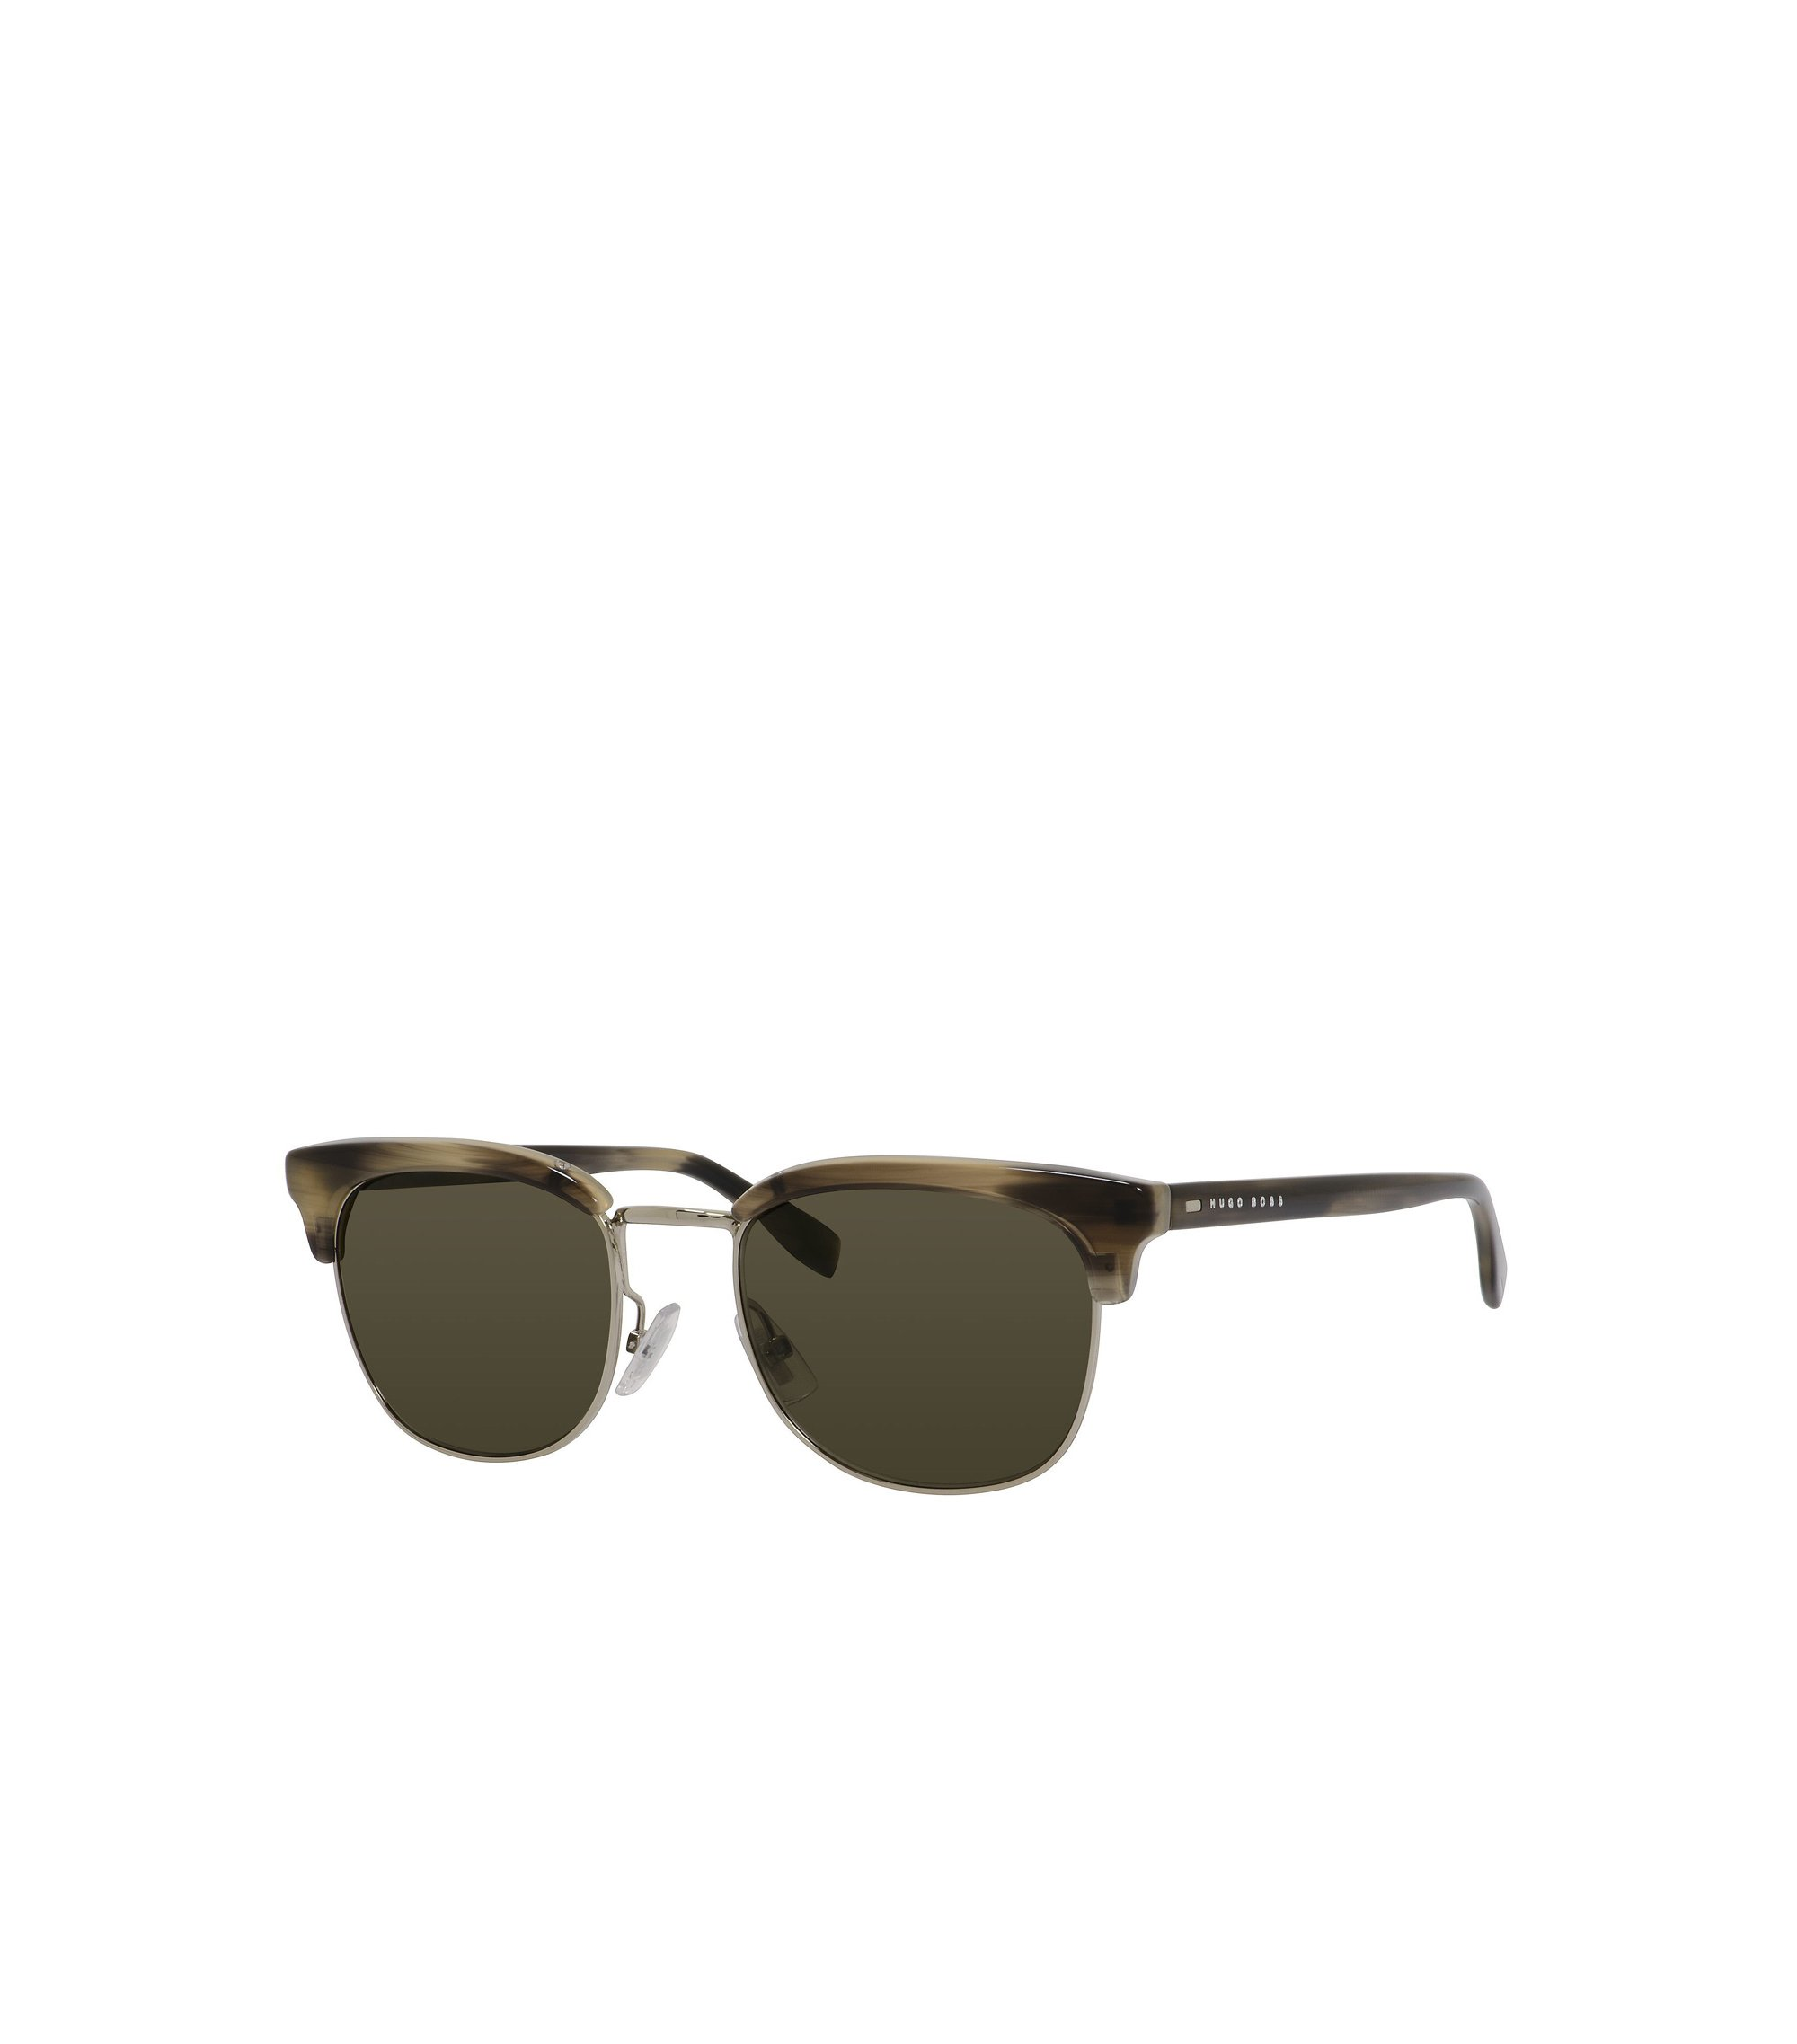 'BOSS 0667S' | Brown Lens Clubmaster Sunglasses, Assorted-Pre-Pack